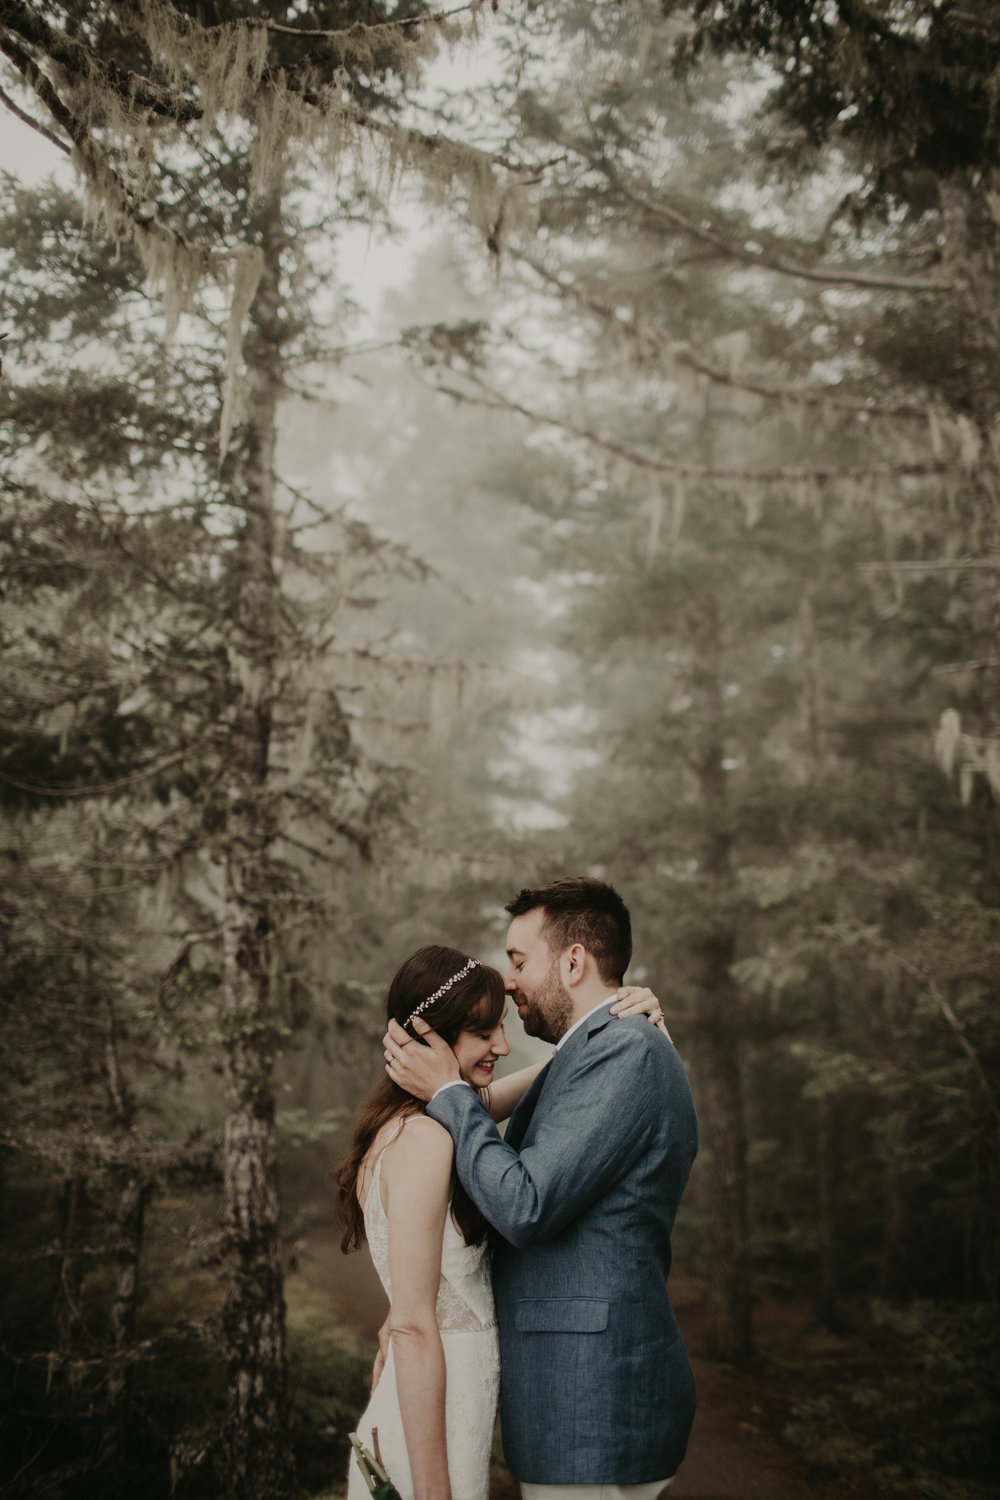 PNW-elopement-wedding-engagement-olympic national park-port angeles-hurricane ridge-lake crescent-kayla dawn photography- photographer-photography-kayladawnphoto-164.jpg